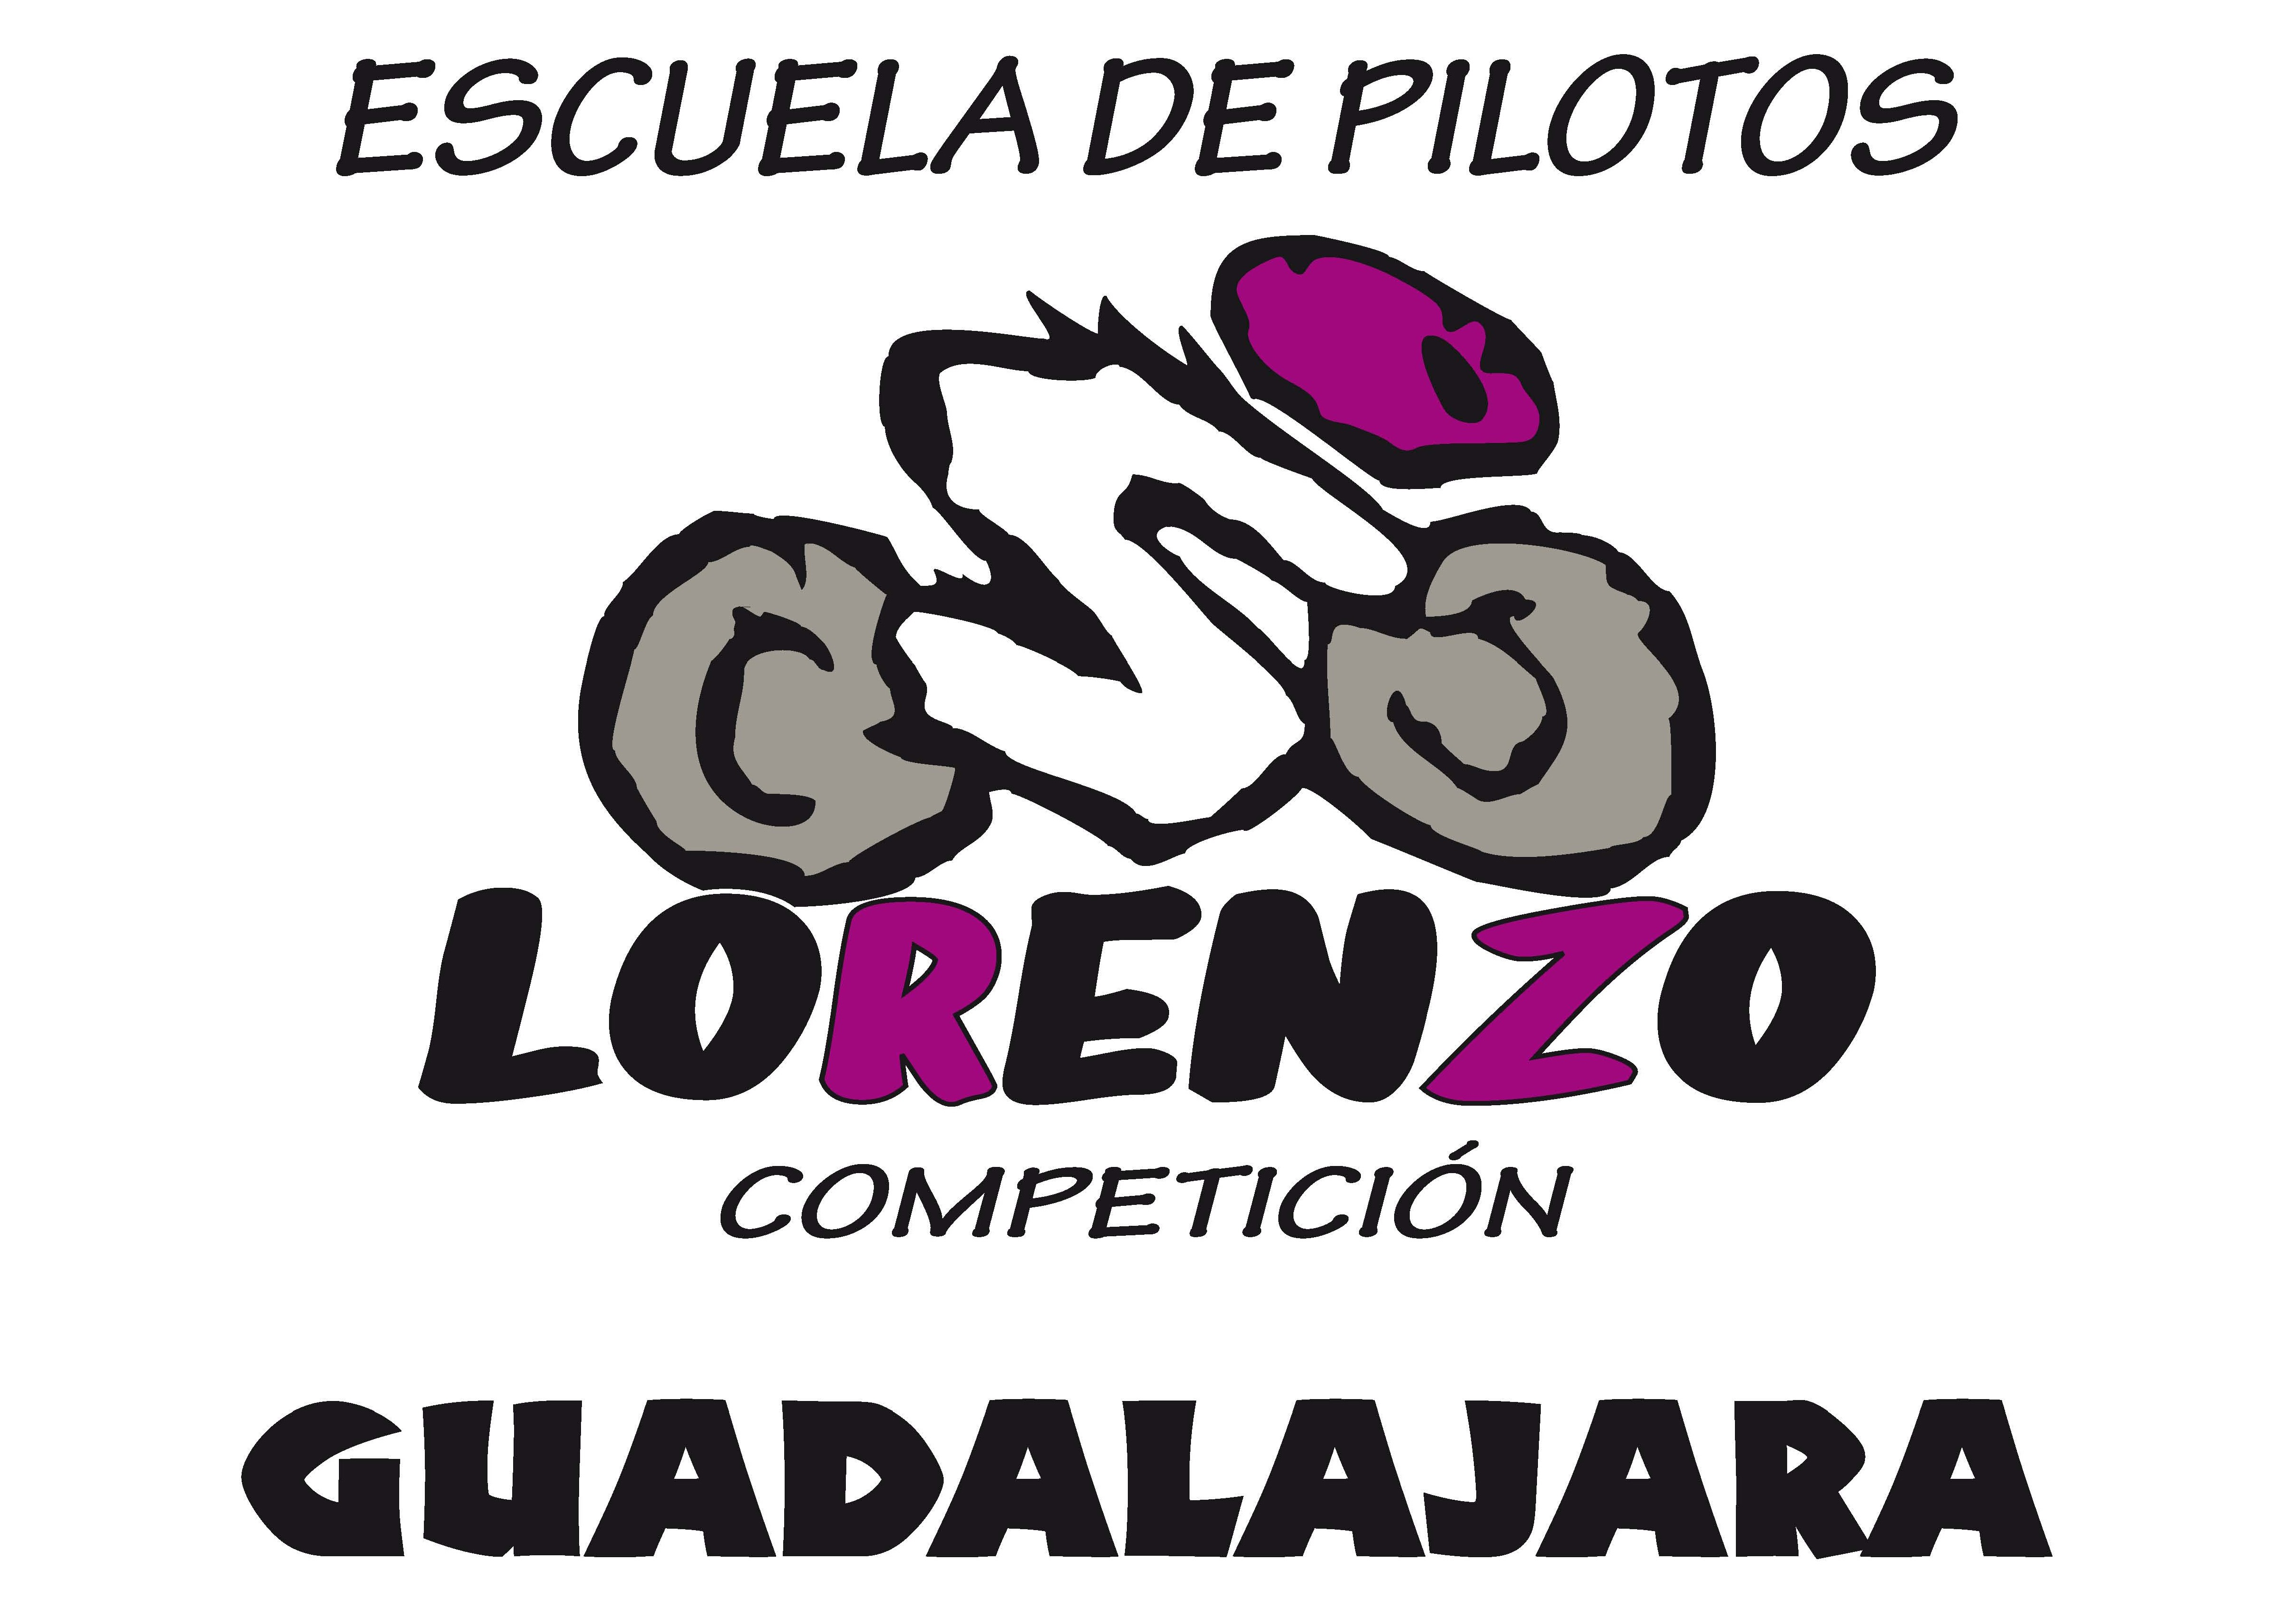 Escuela Lorenzo Competición